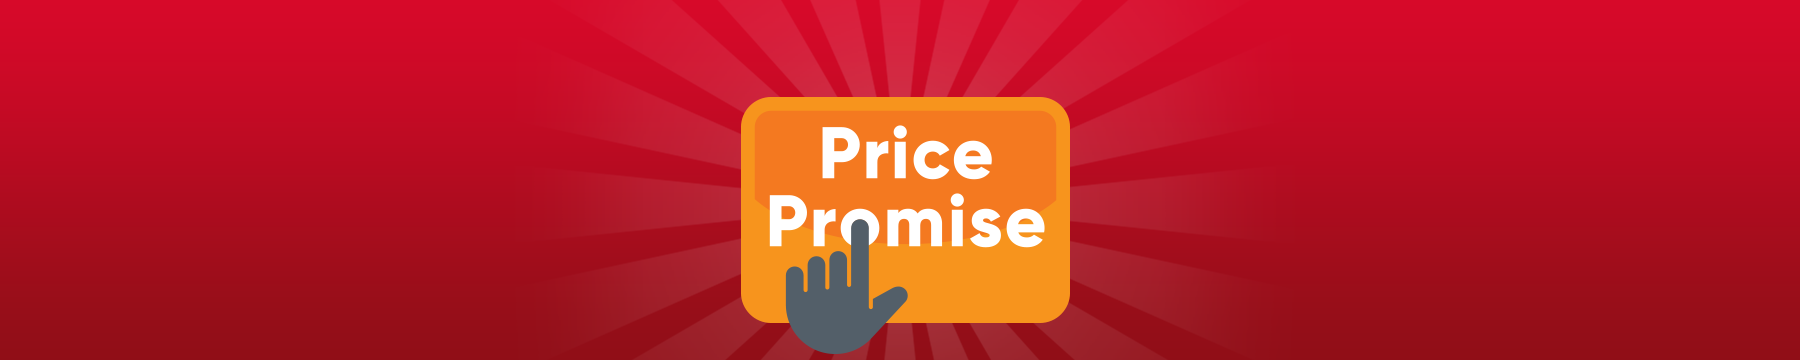 Price promise banner